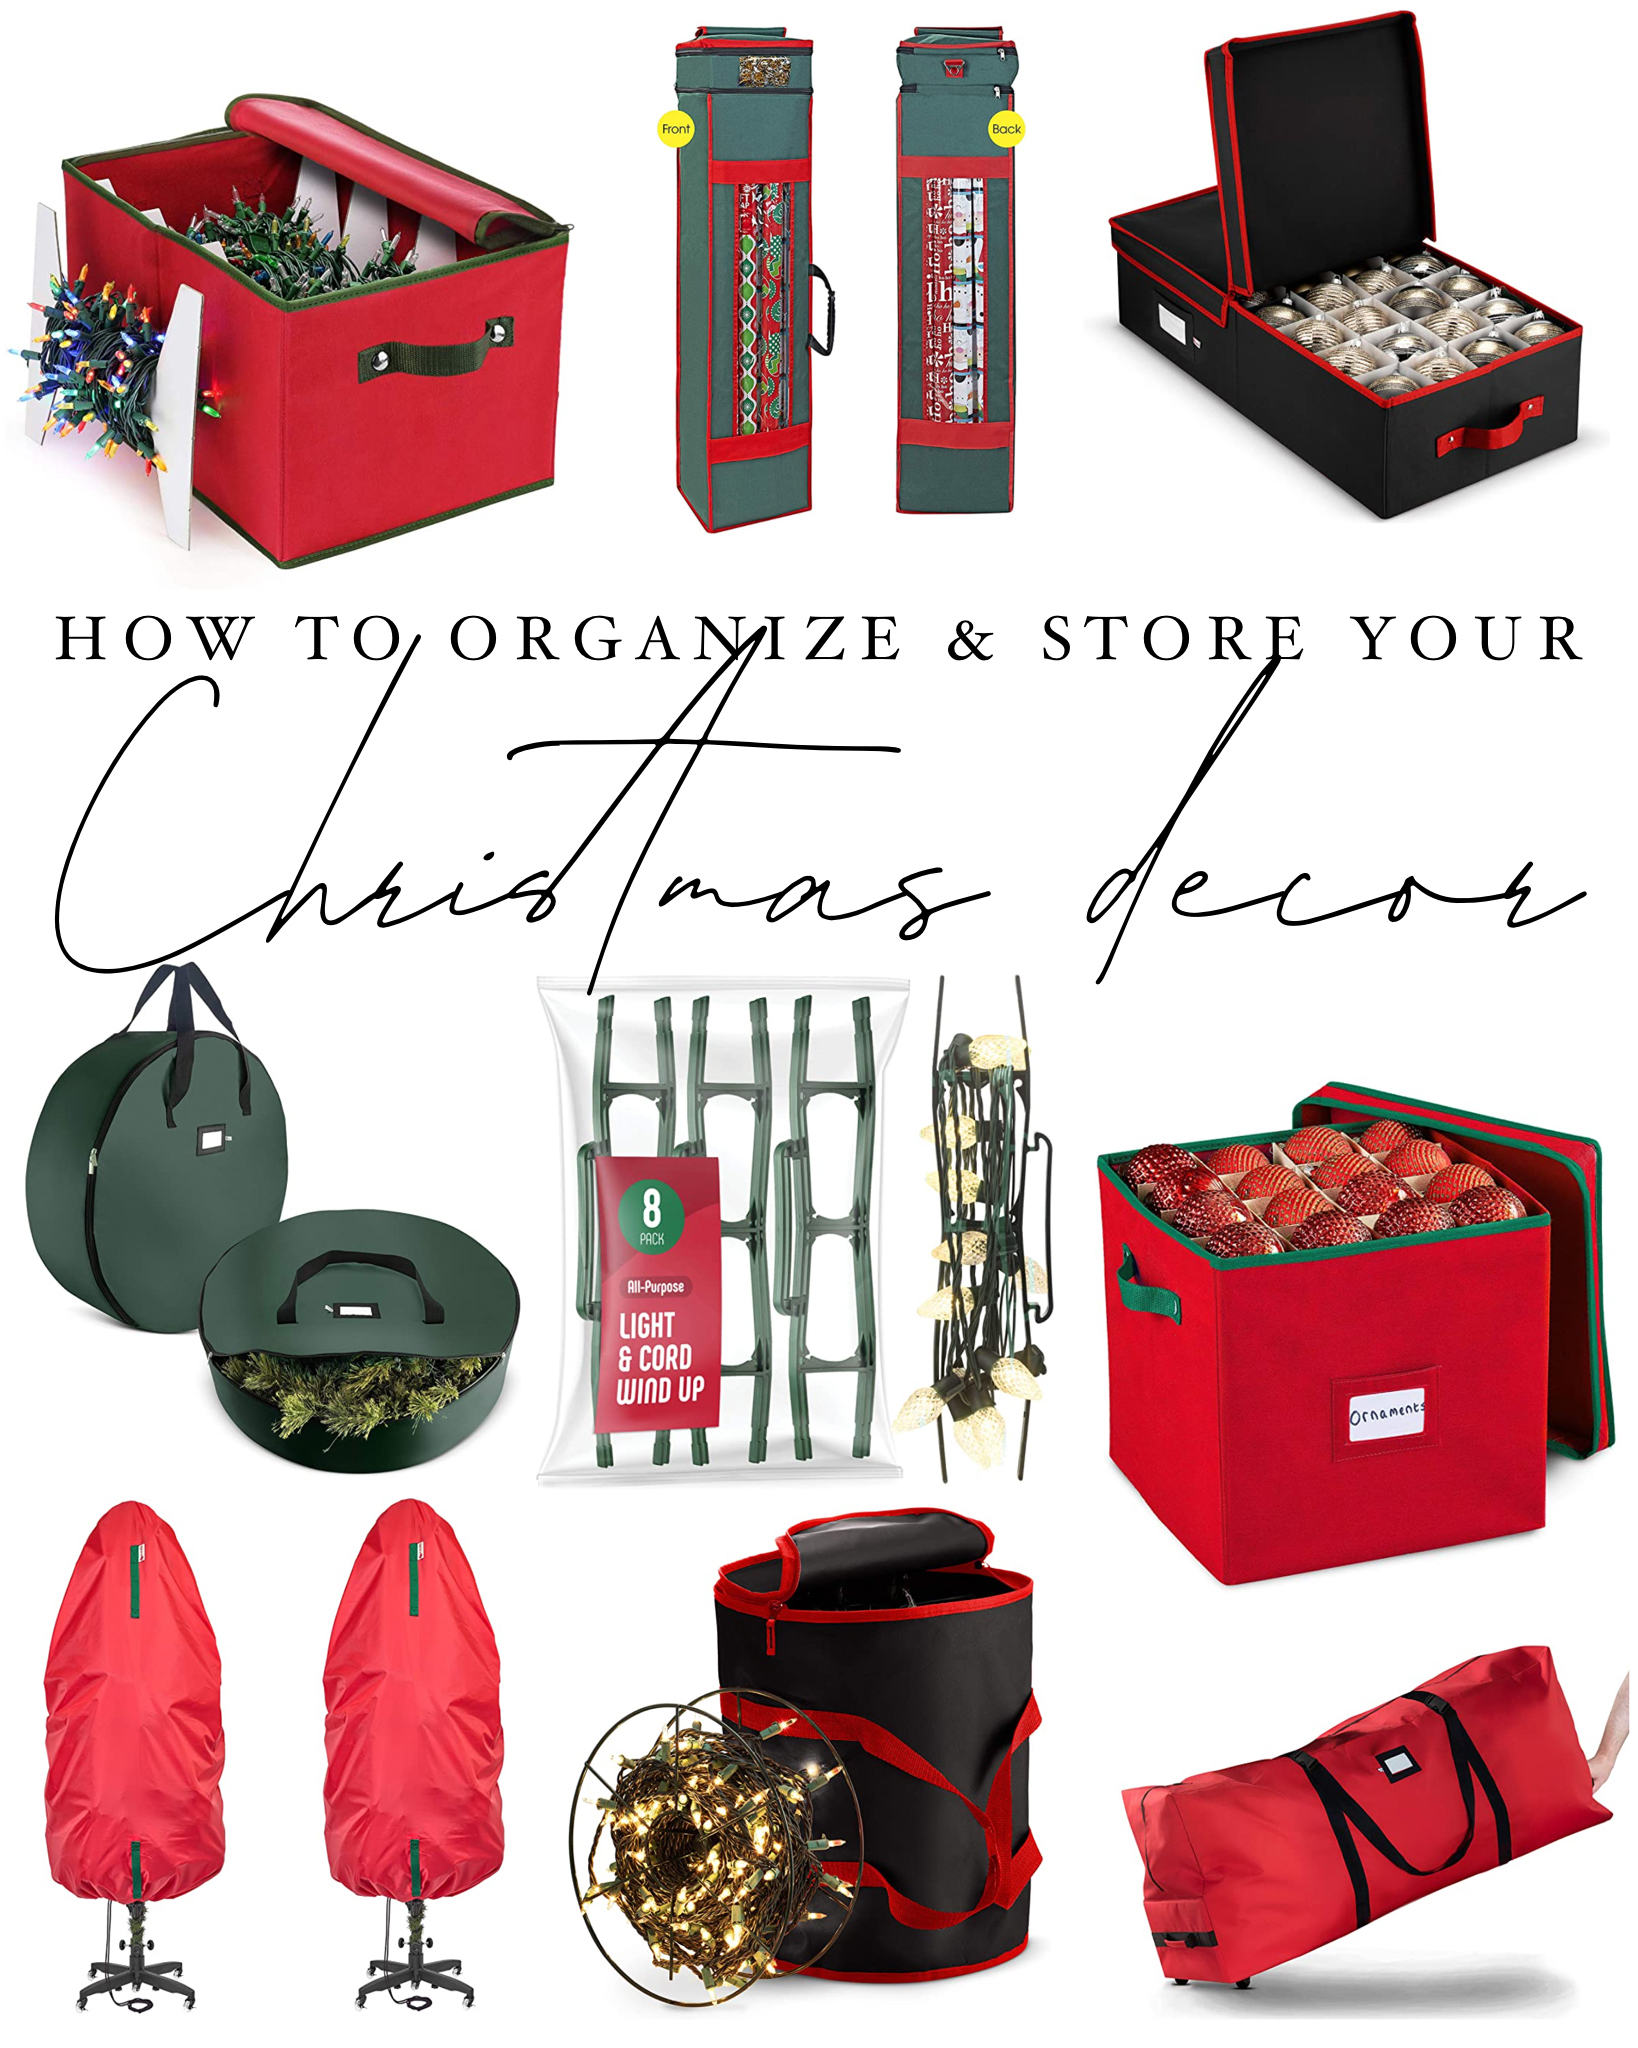 How to Organize & Store Your Christmas Decorations